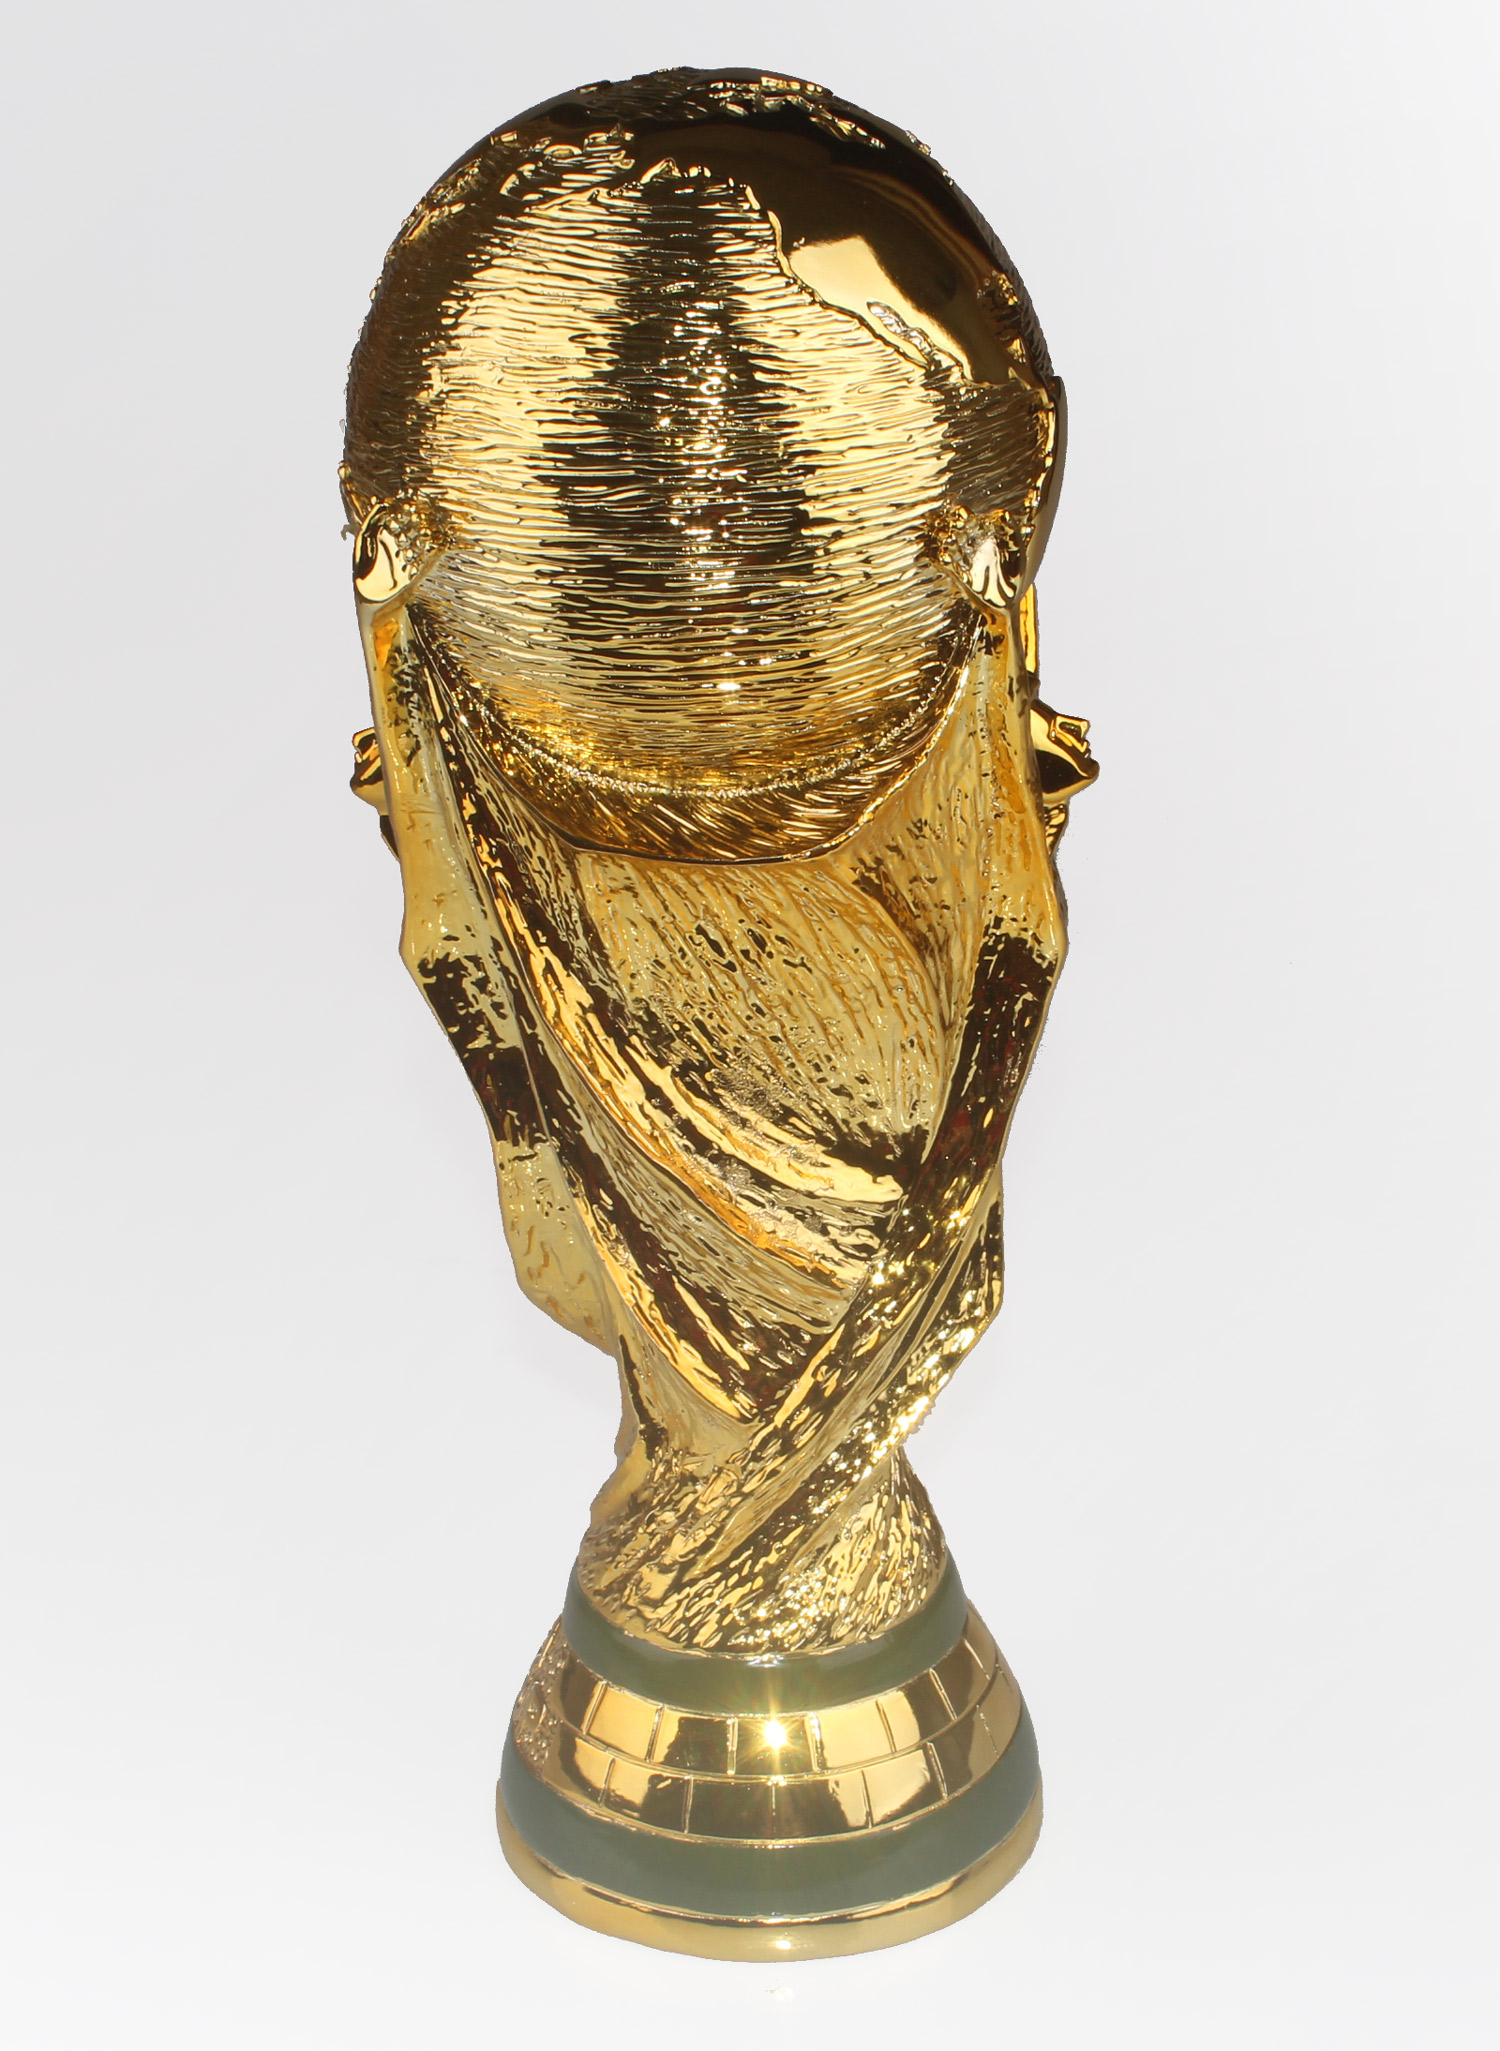 2018 <font><b>World</b></font> <font><b>Cup</b></font> Trophy Model Full Size 36cm Statue Gold Resin Materials trophies 2.5KG Hollow